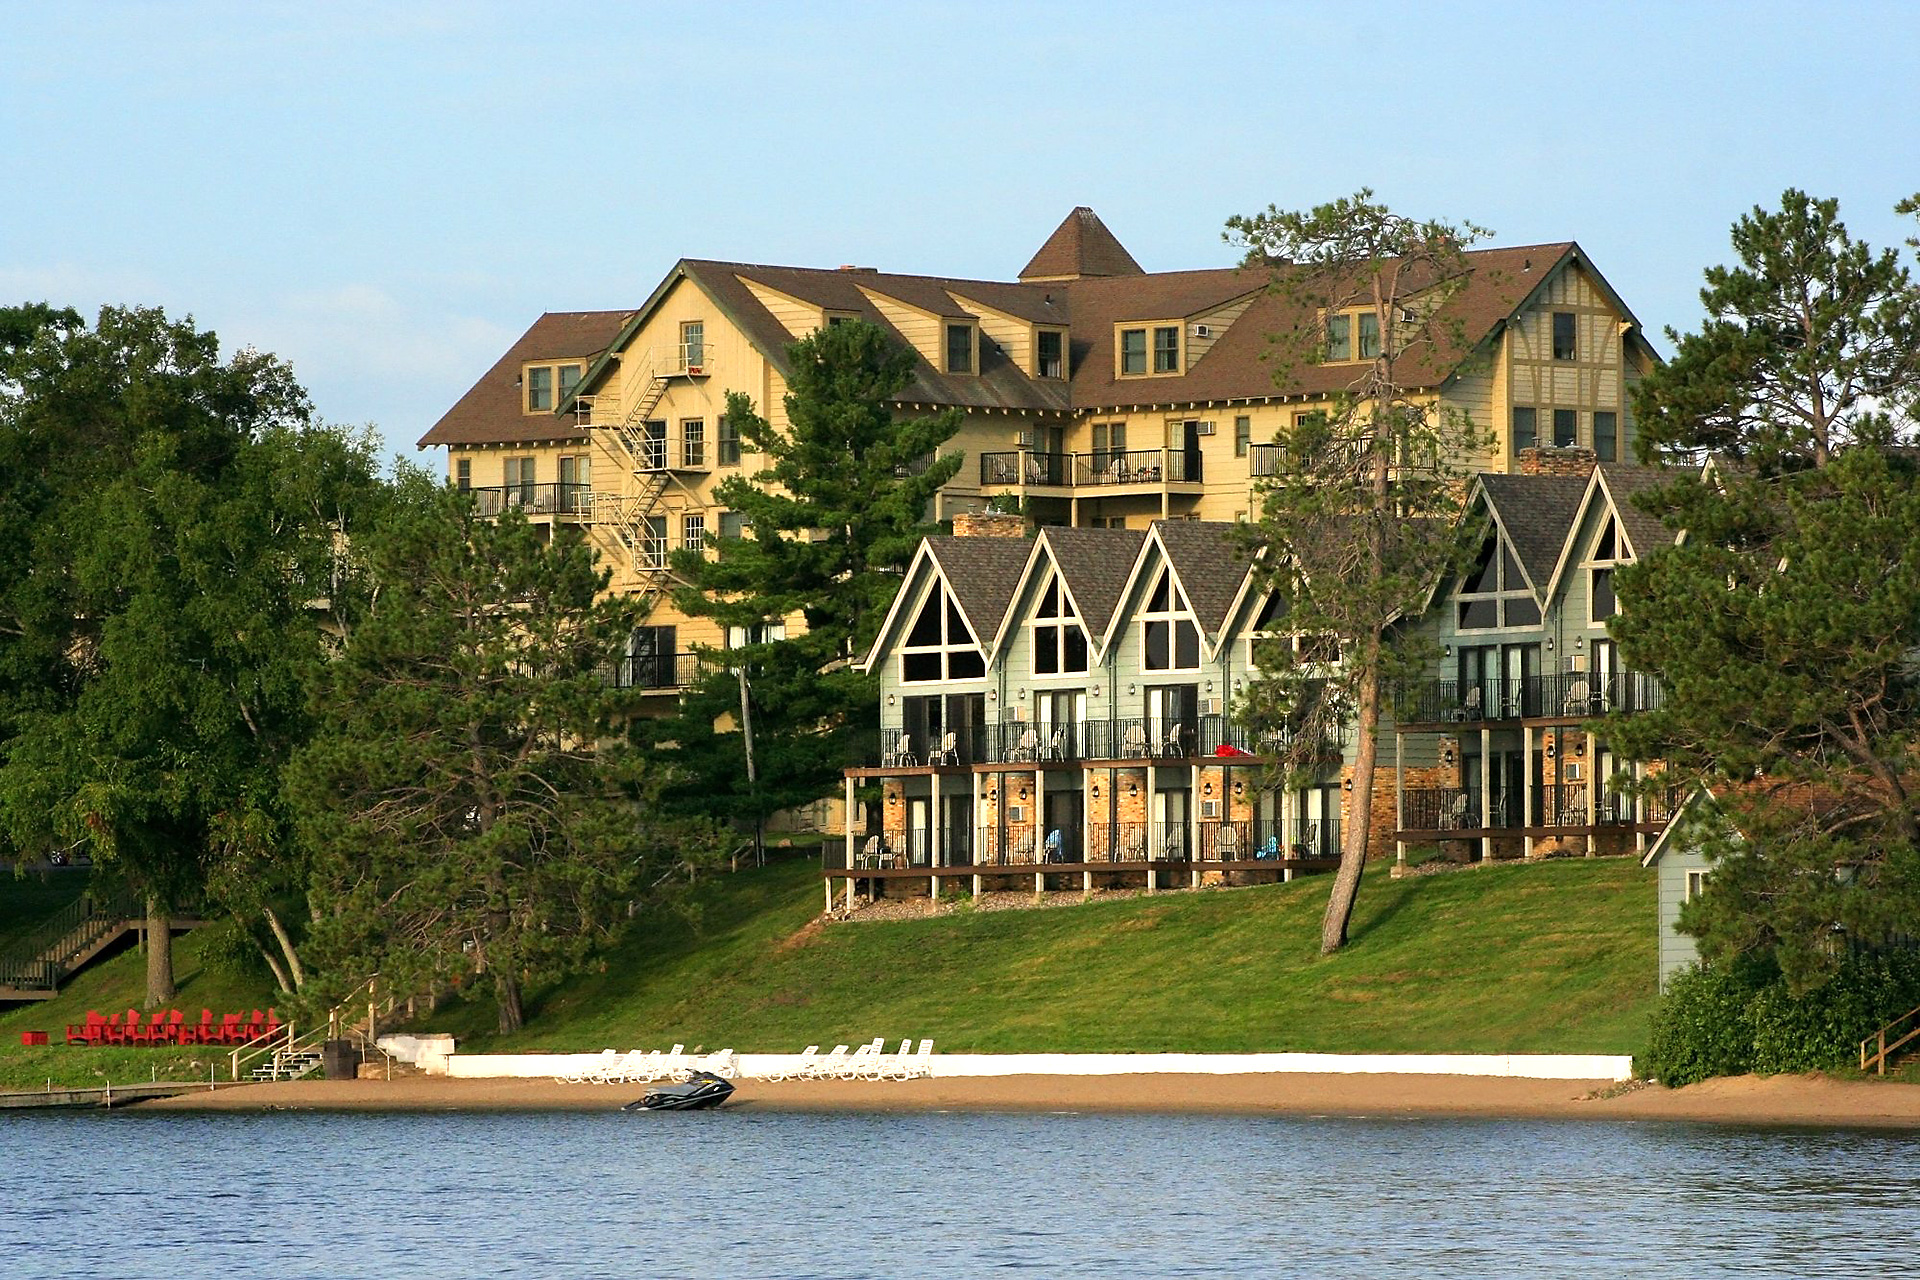 Sunrise Villas at Madden's on Gull Lake; Courtesy of Madden's on Gull Lake